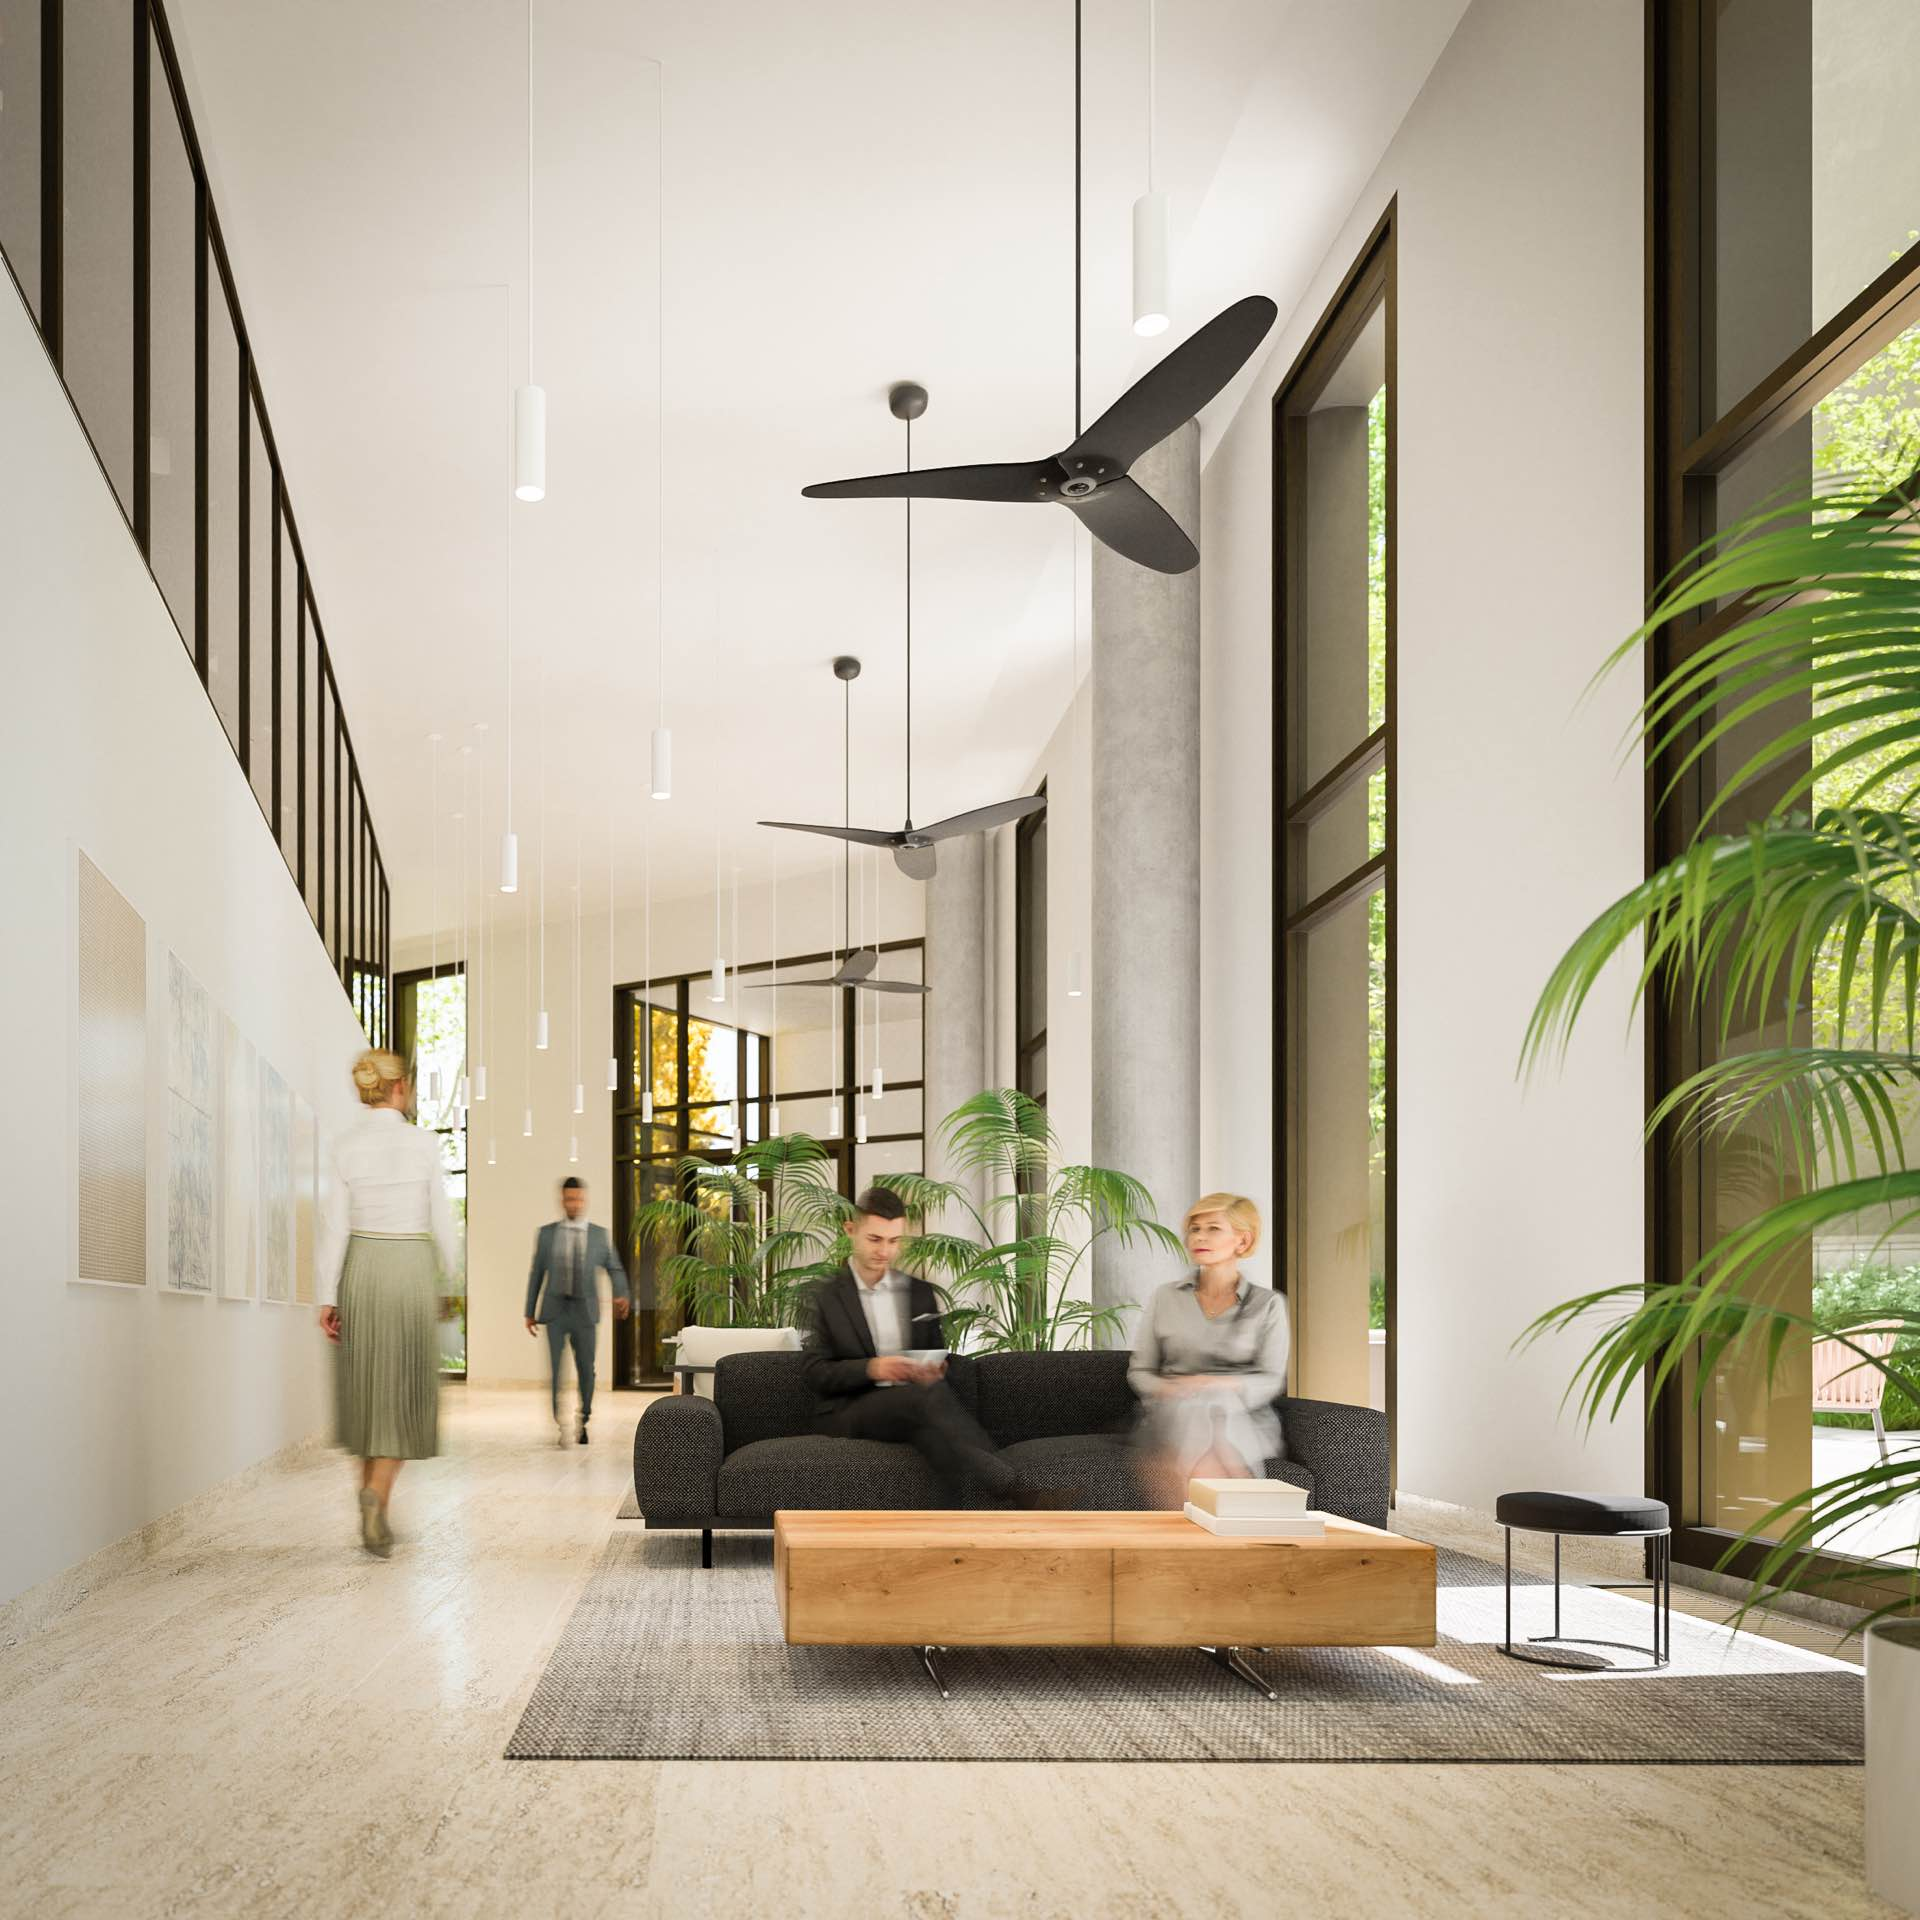 Elevated lounge spaces to connect and recharge